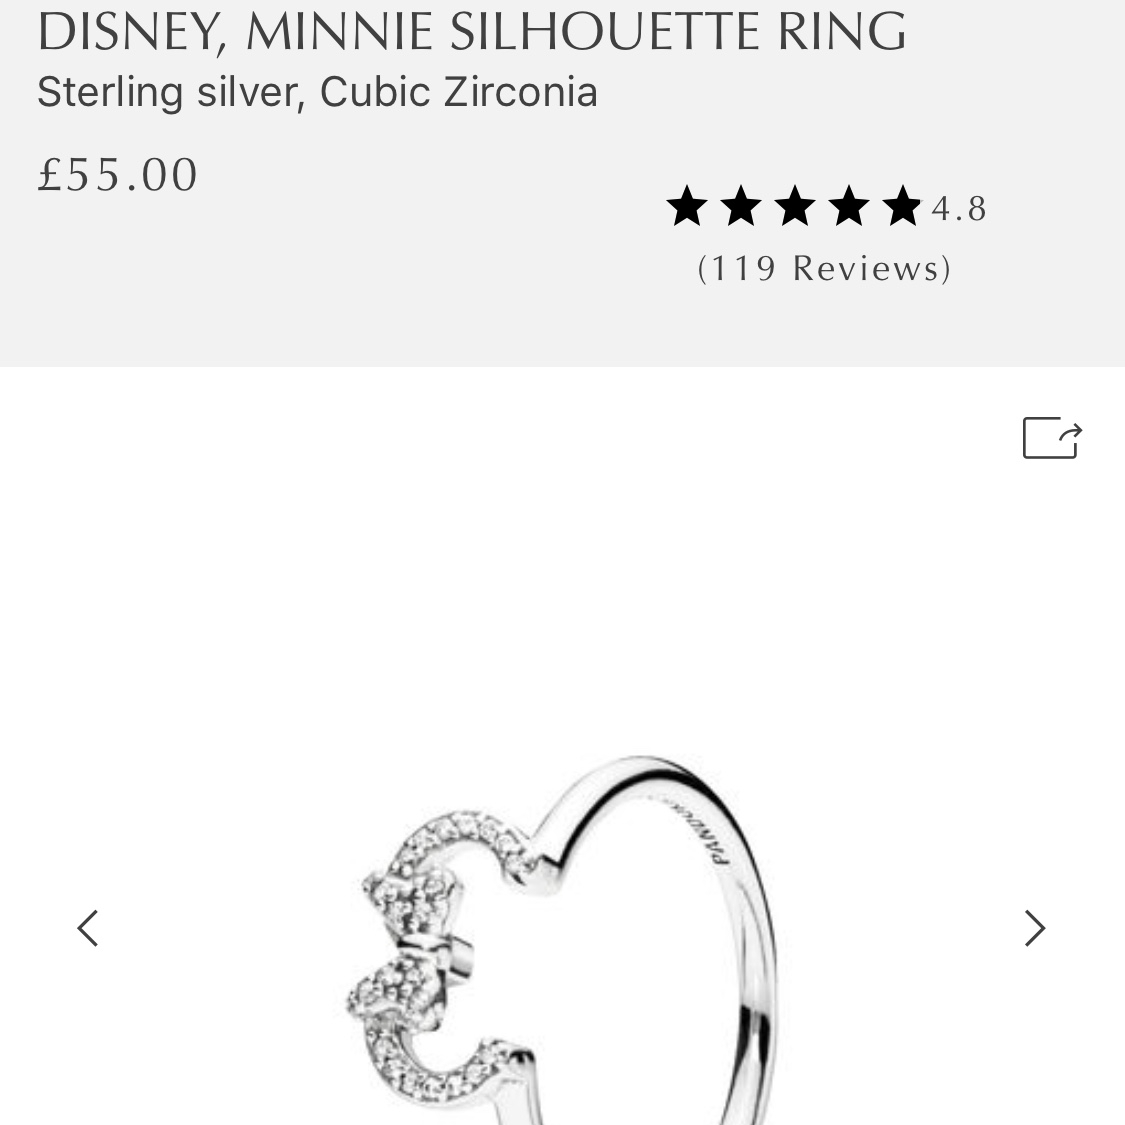 Pandora Ring. Disney Minnie Silhouette Ring. Brand – Depop Within Most Recently Released Disney Minnie Silhouette Rings (Gallery 5 of 25)